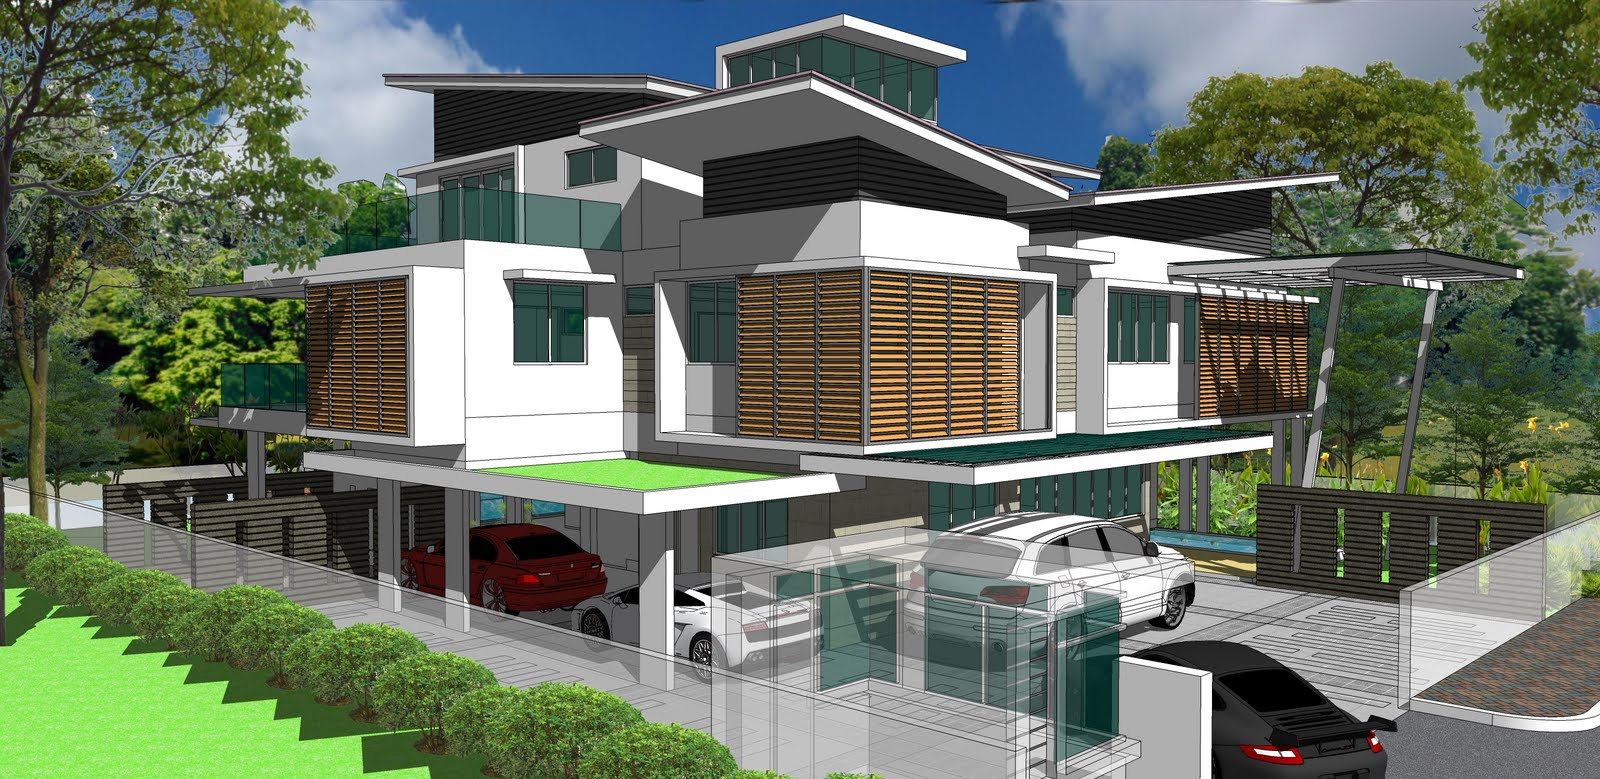 House Interior Design Modern House Roof Design Malaysia